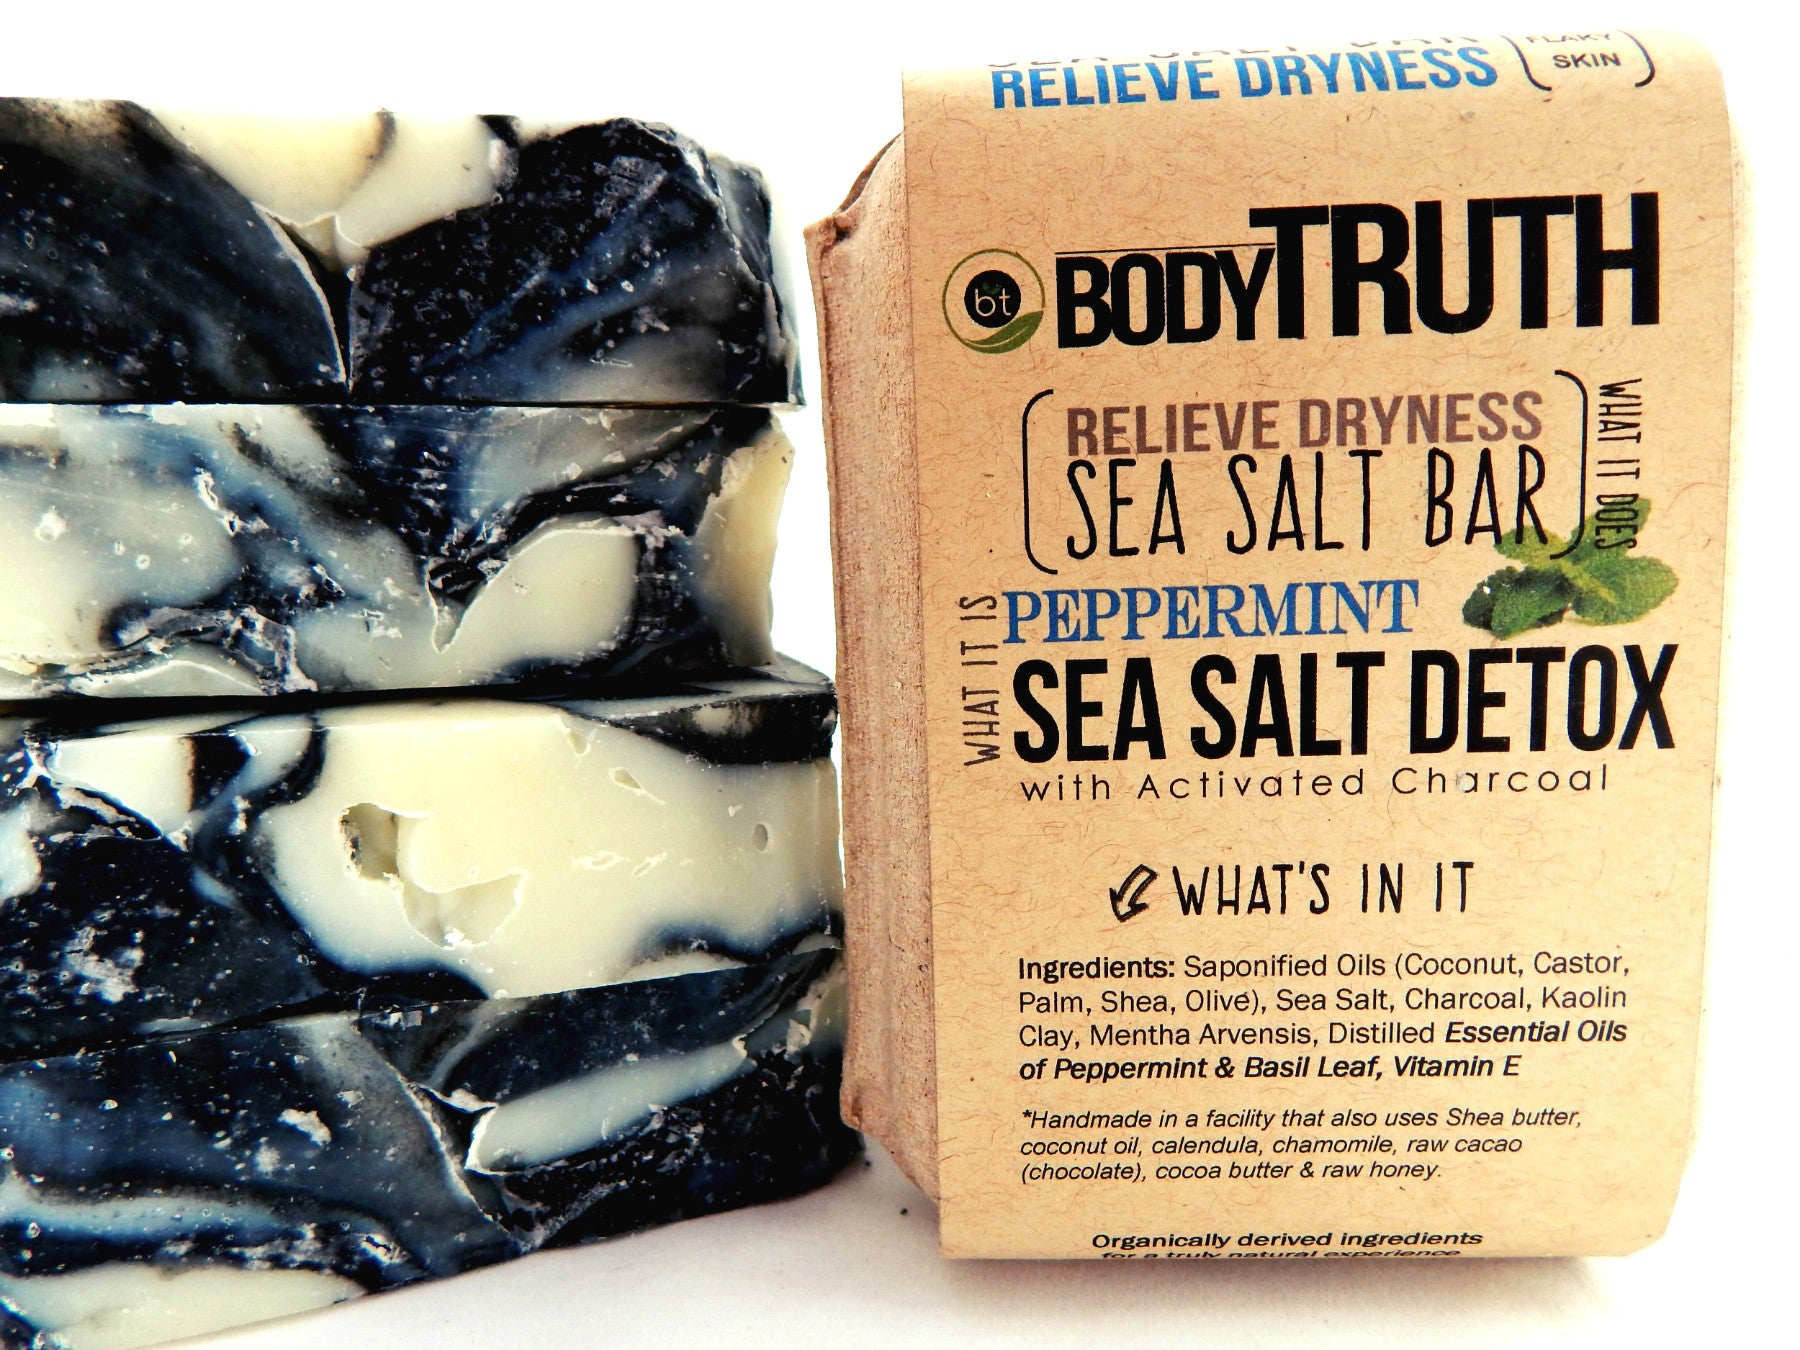 BODYTRUTH brand, Peppermint Sea Salt Detox, Charcoal Body Bar by GHSOAPS with Charcoal & Sea Salt - Face & Body Complexion Bars | acne, eczema, blemishes, dermatitis, sea salt soap, charcoal soap, clay soap, shea butter soap, essential oils, fragrance-oil free, organic